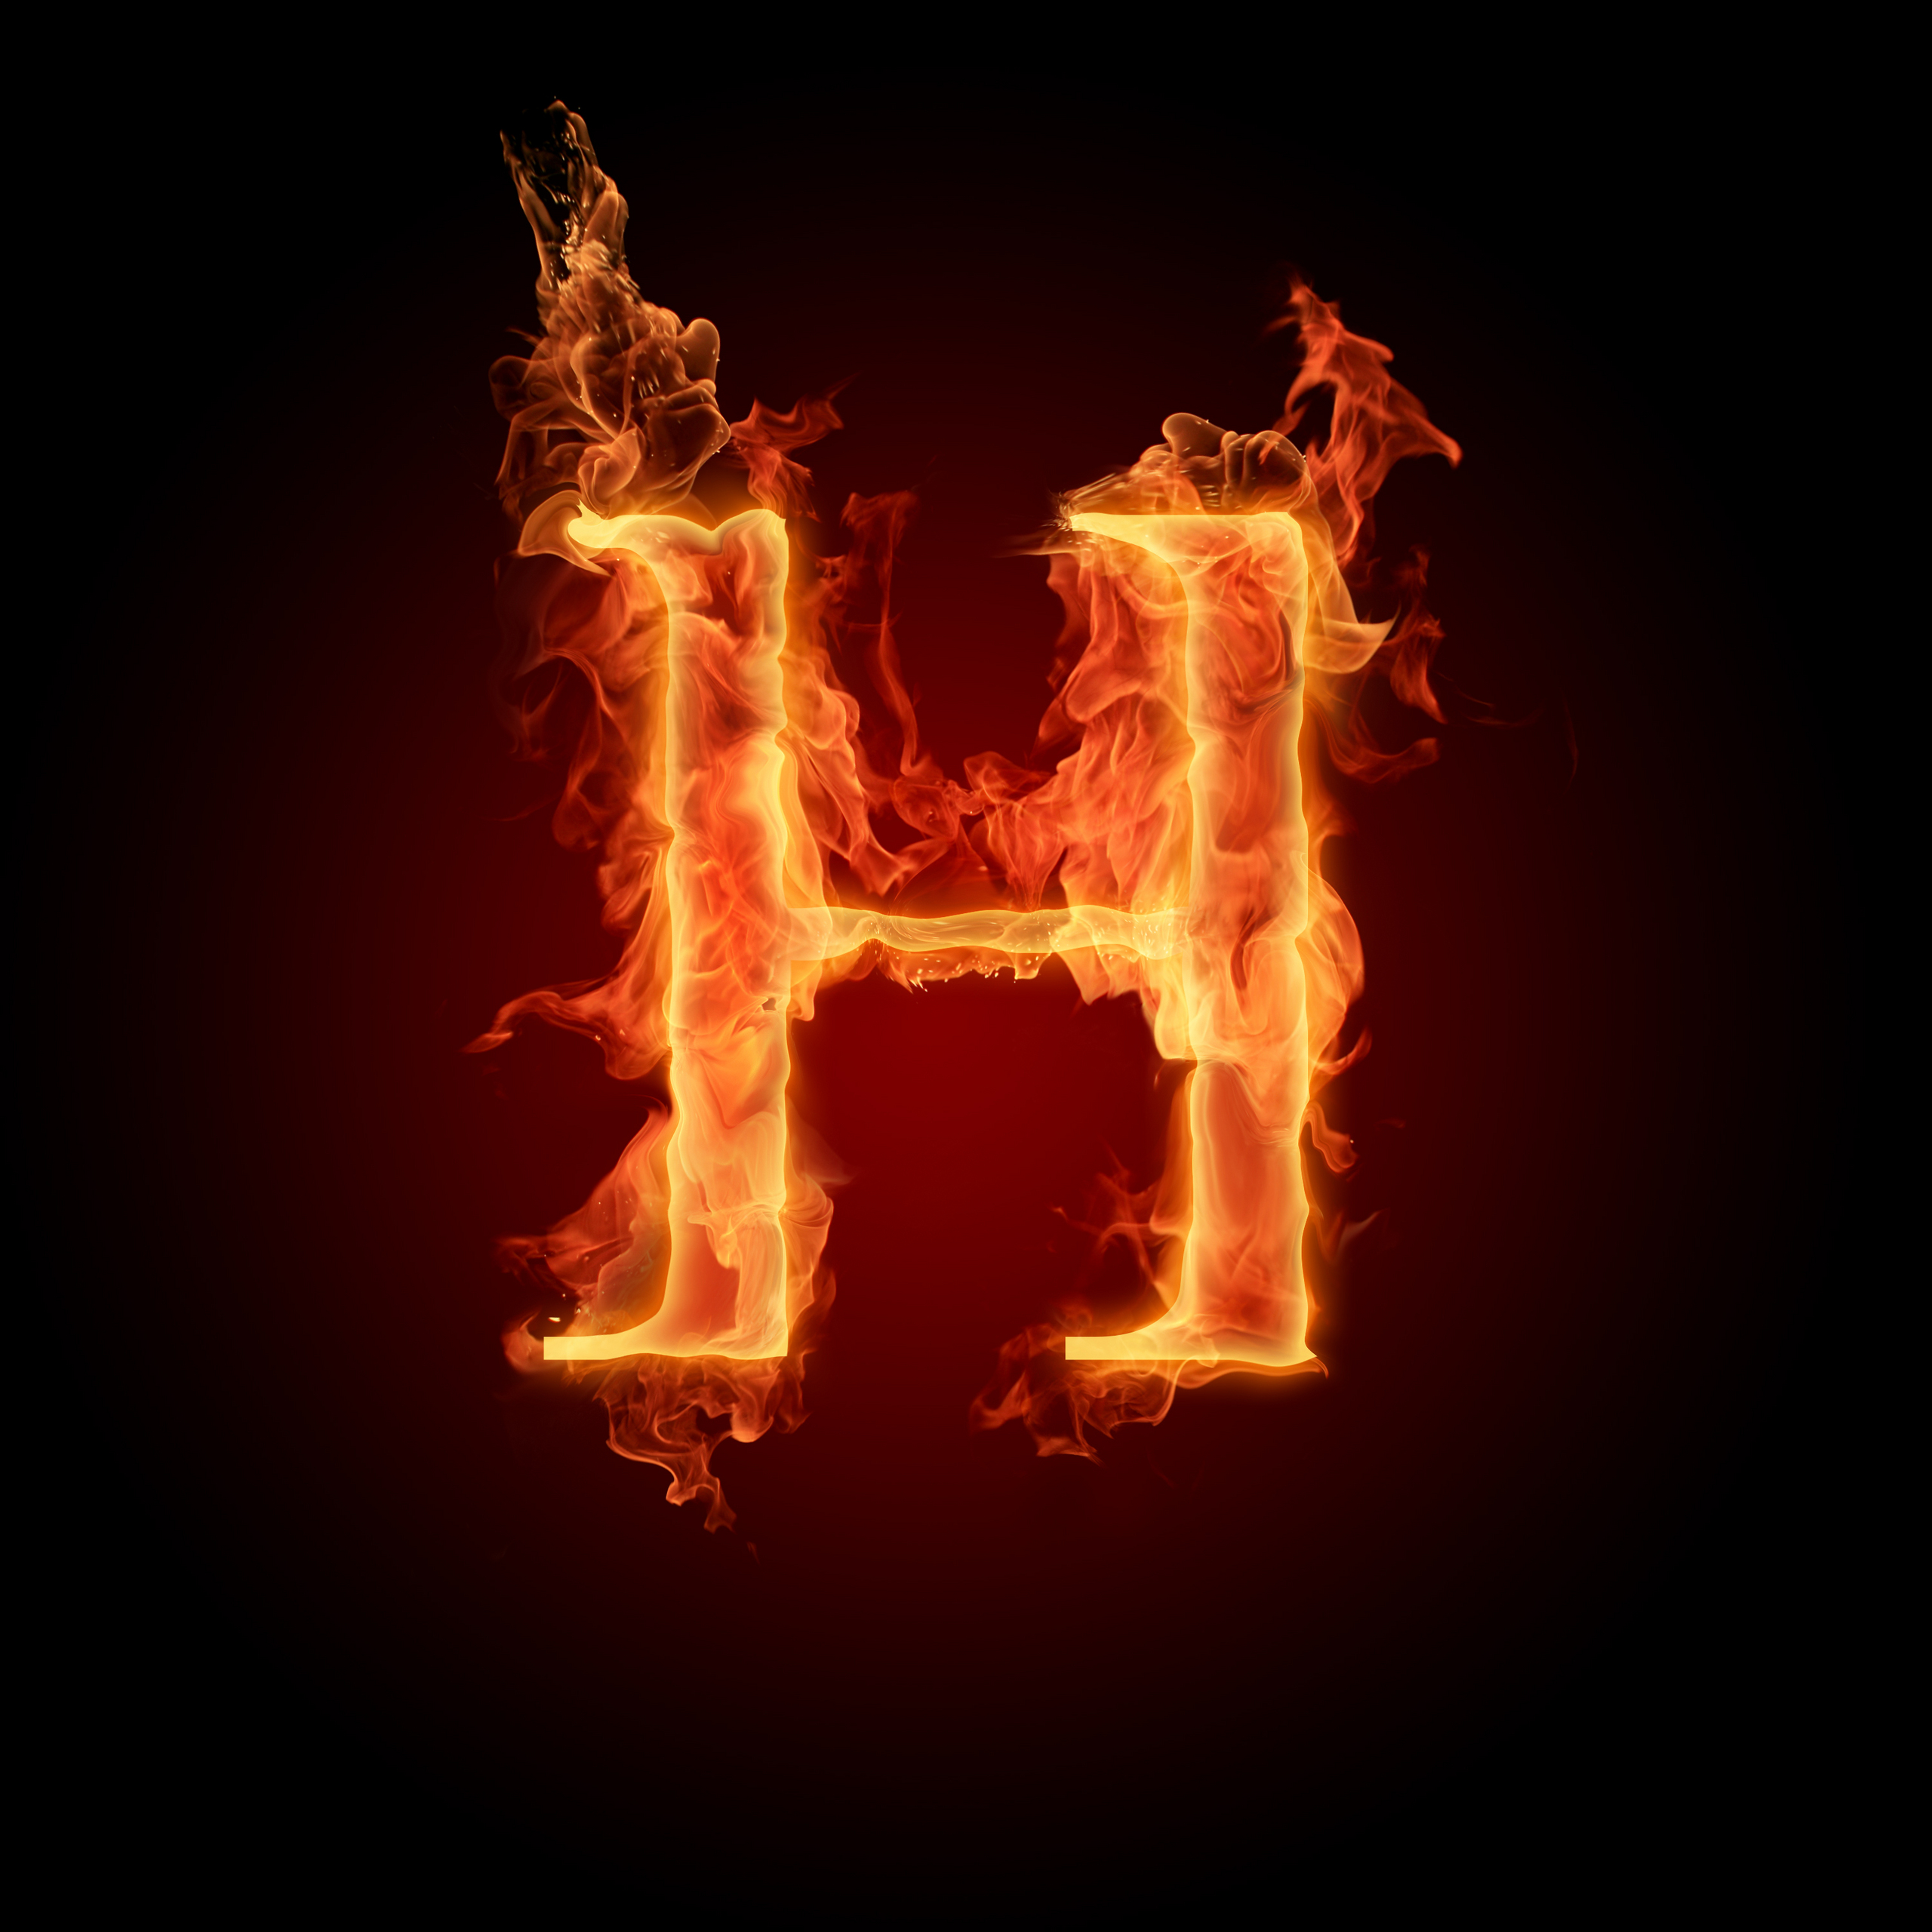 Perfect The Letter H Images The Letter H HD Wallpaper And Background Photos